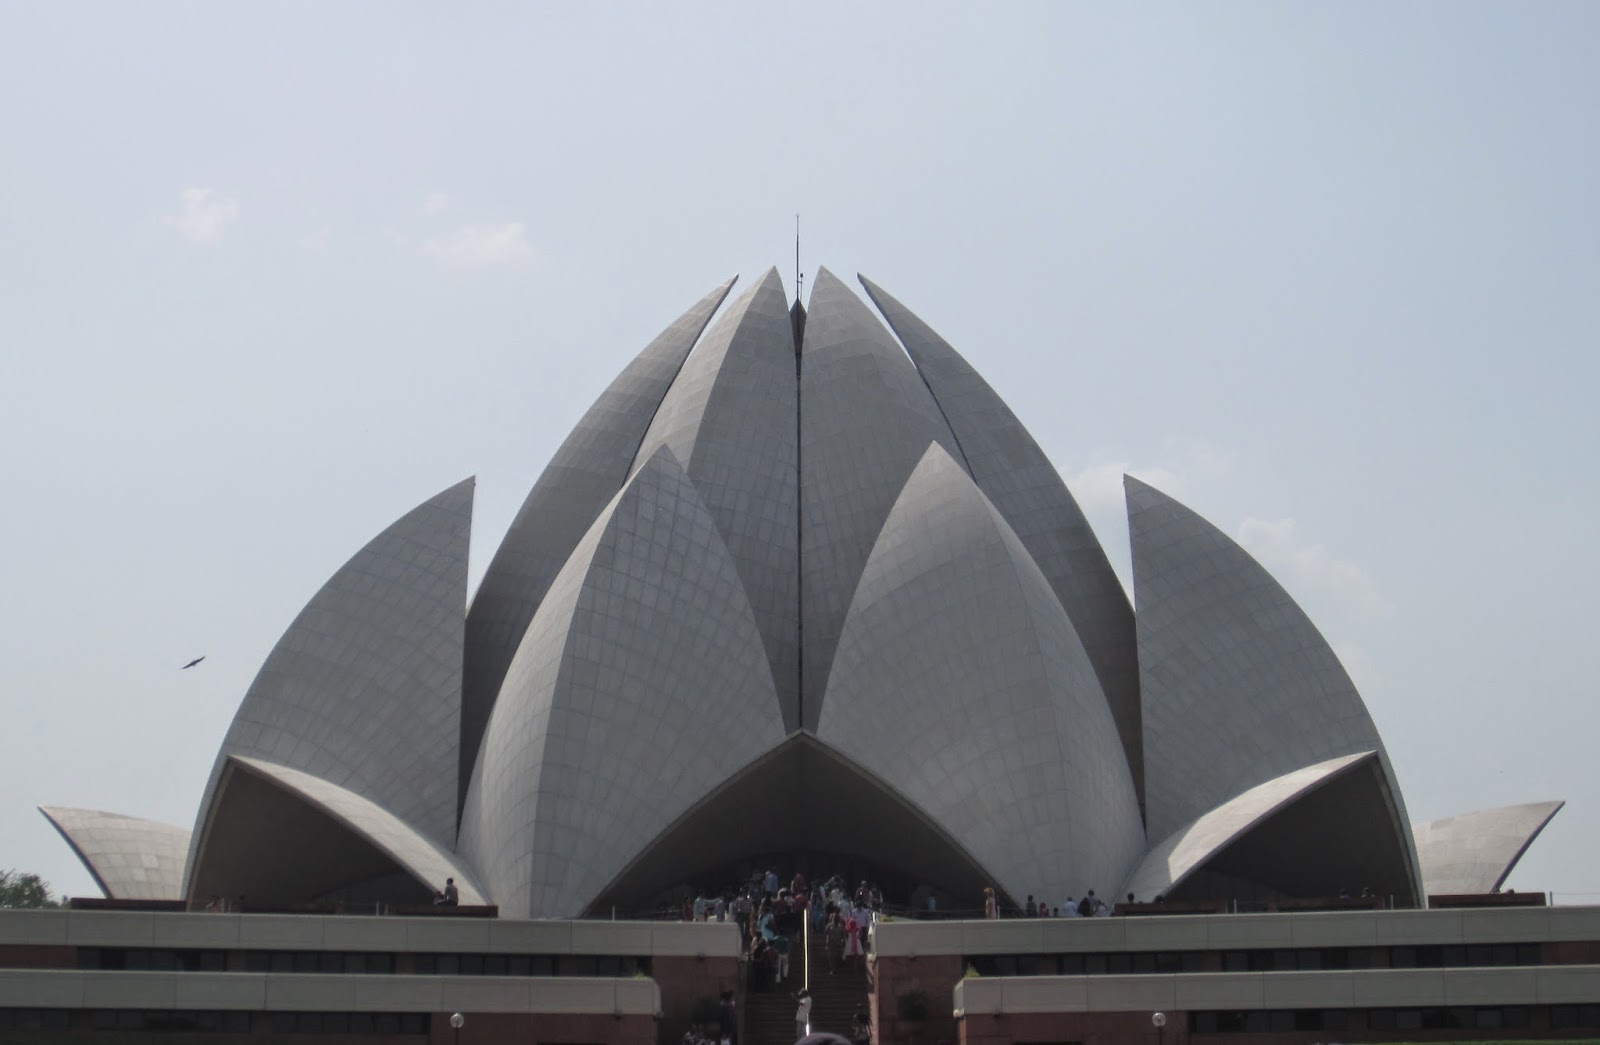 lotus temple essay The 'lotus temple' is located in new delhi, india it is a baha'is house of worship the beautiful lotus shaped temple was opened in the year 1986, and since then has invited a number of visitors to its premises.